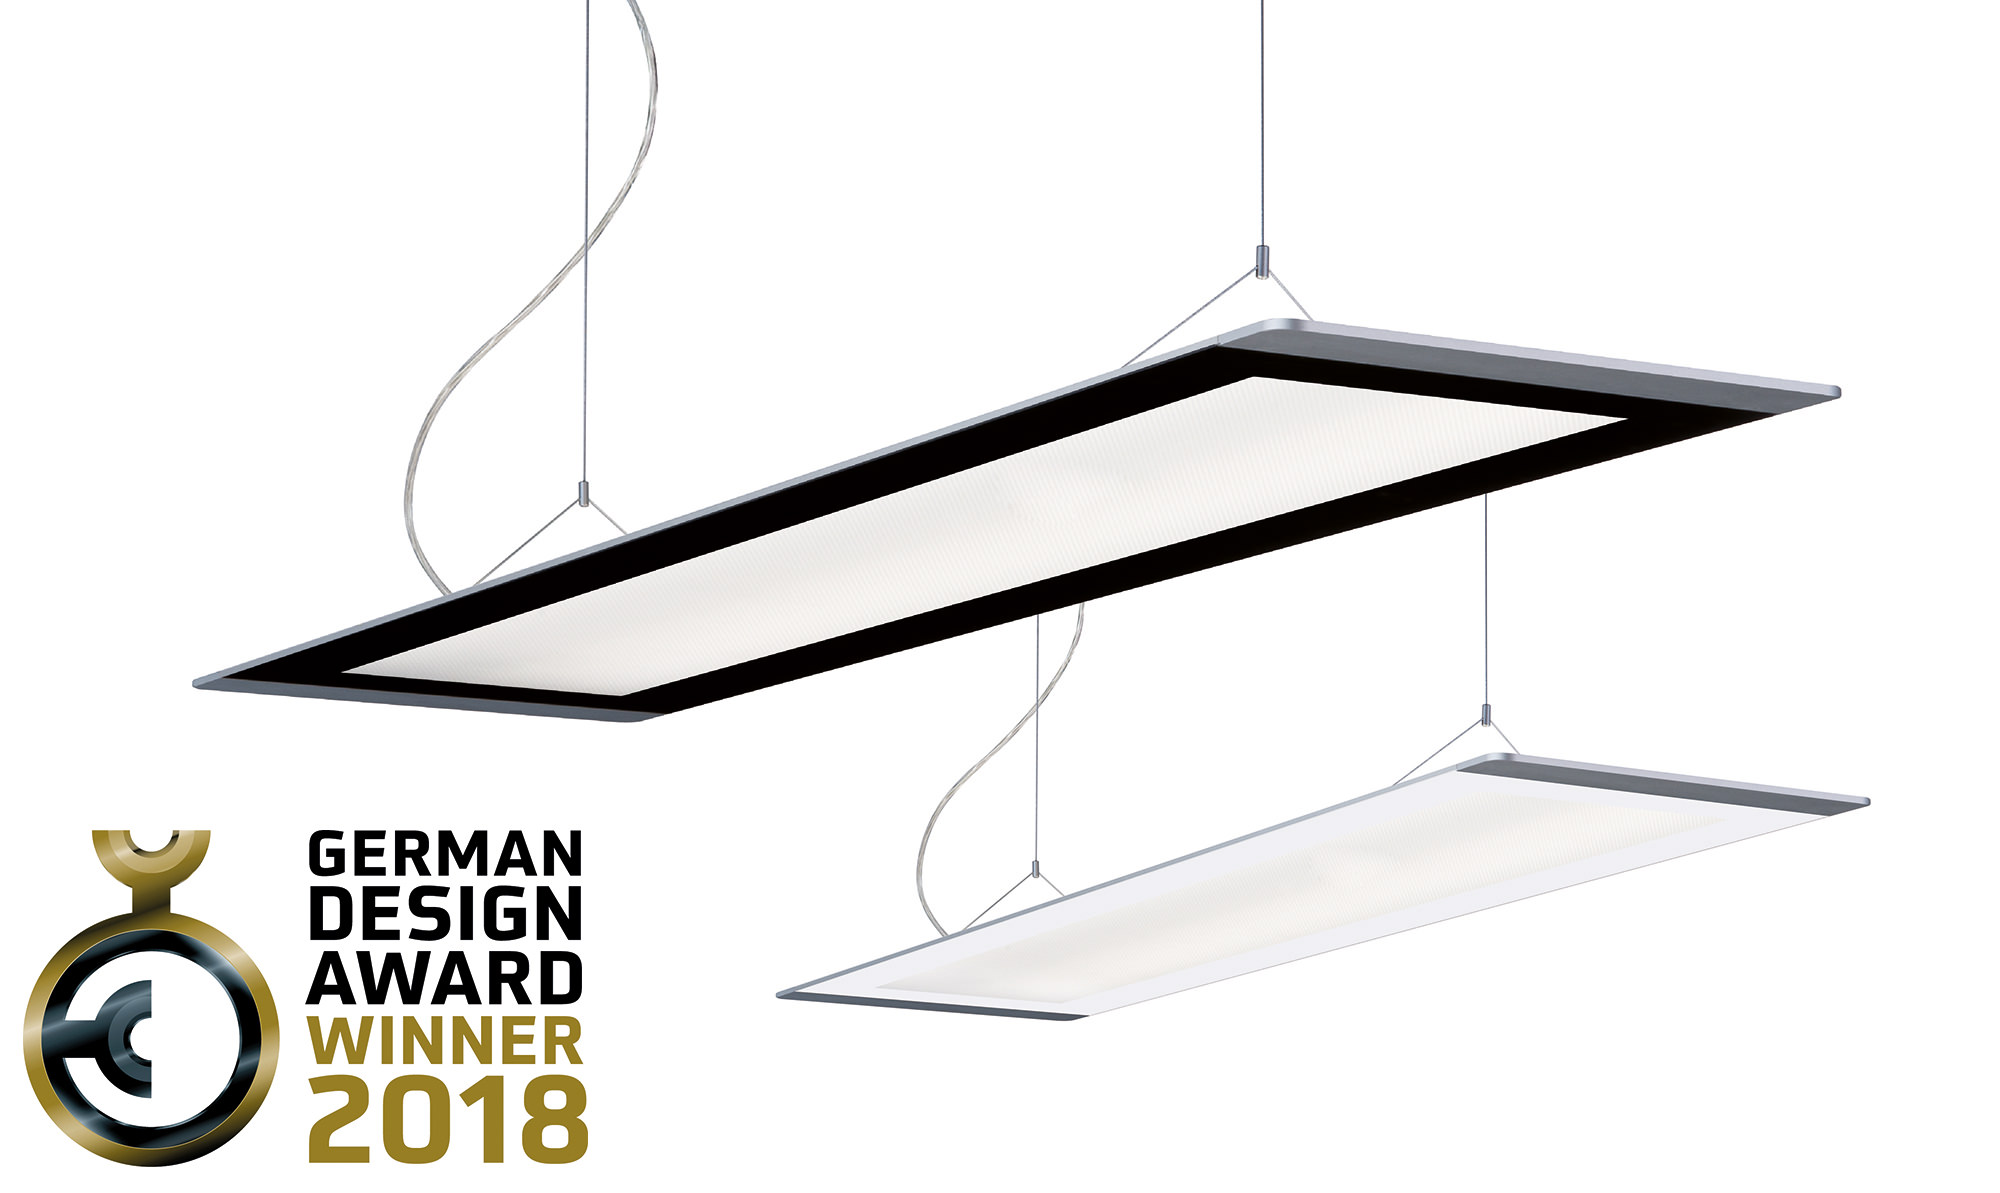 ONYXX AIR German Design Award Winner 2018